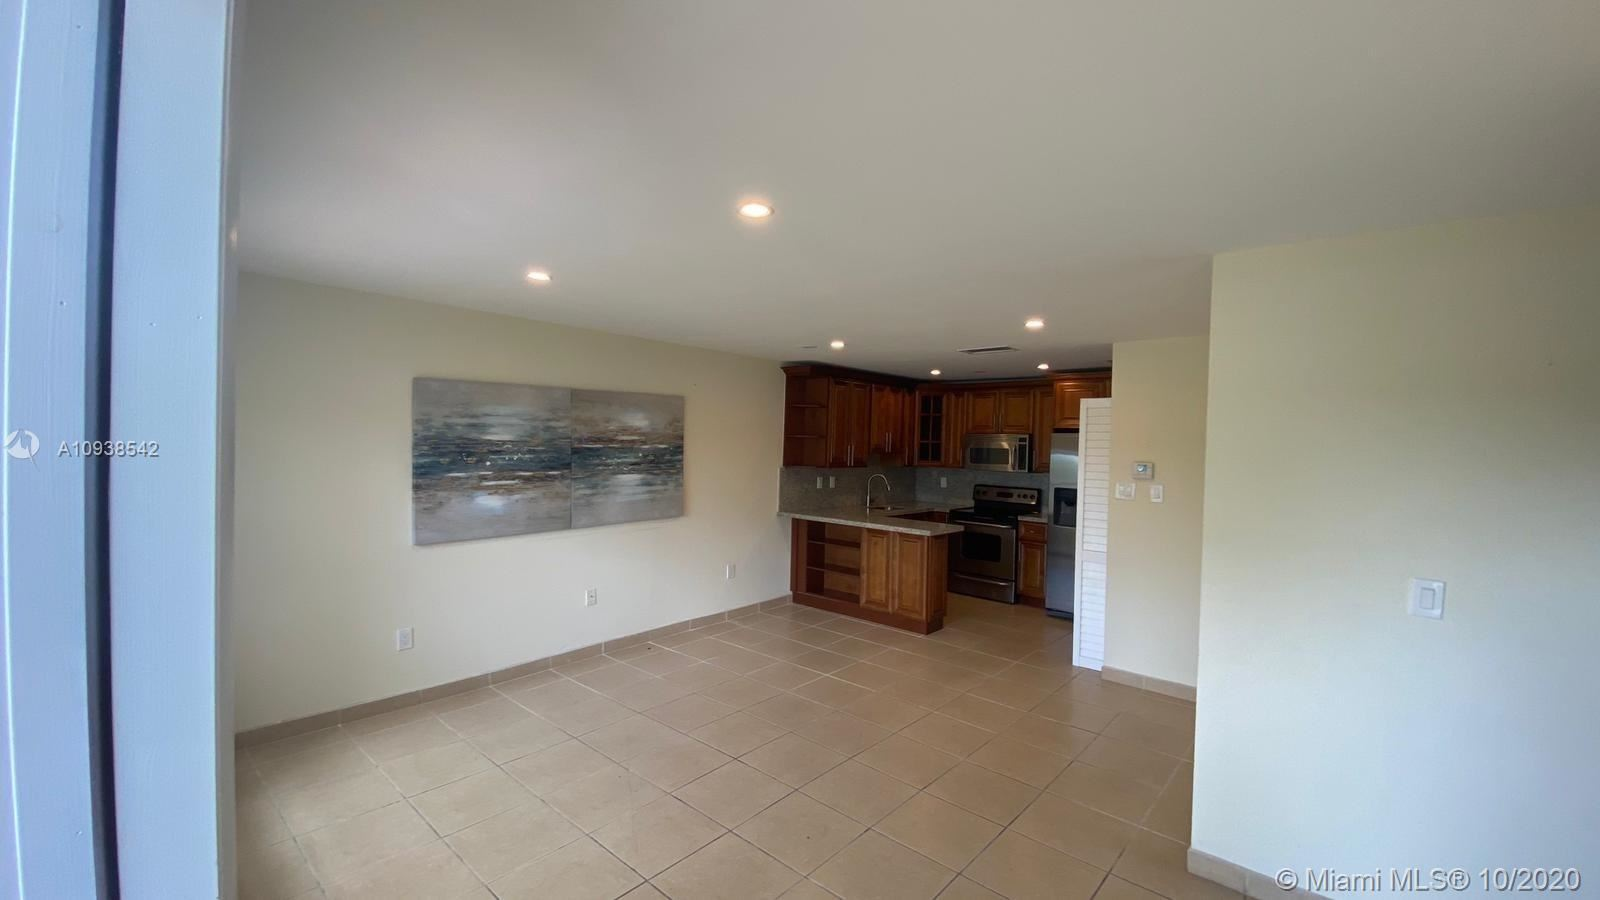 13240 SW 17th Ln #3-16, Miami, FL 33175 - #: A10938542